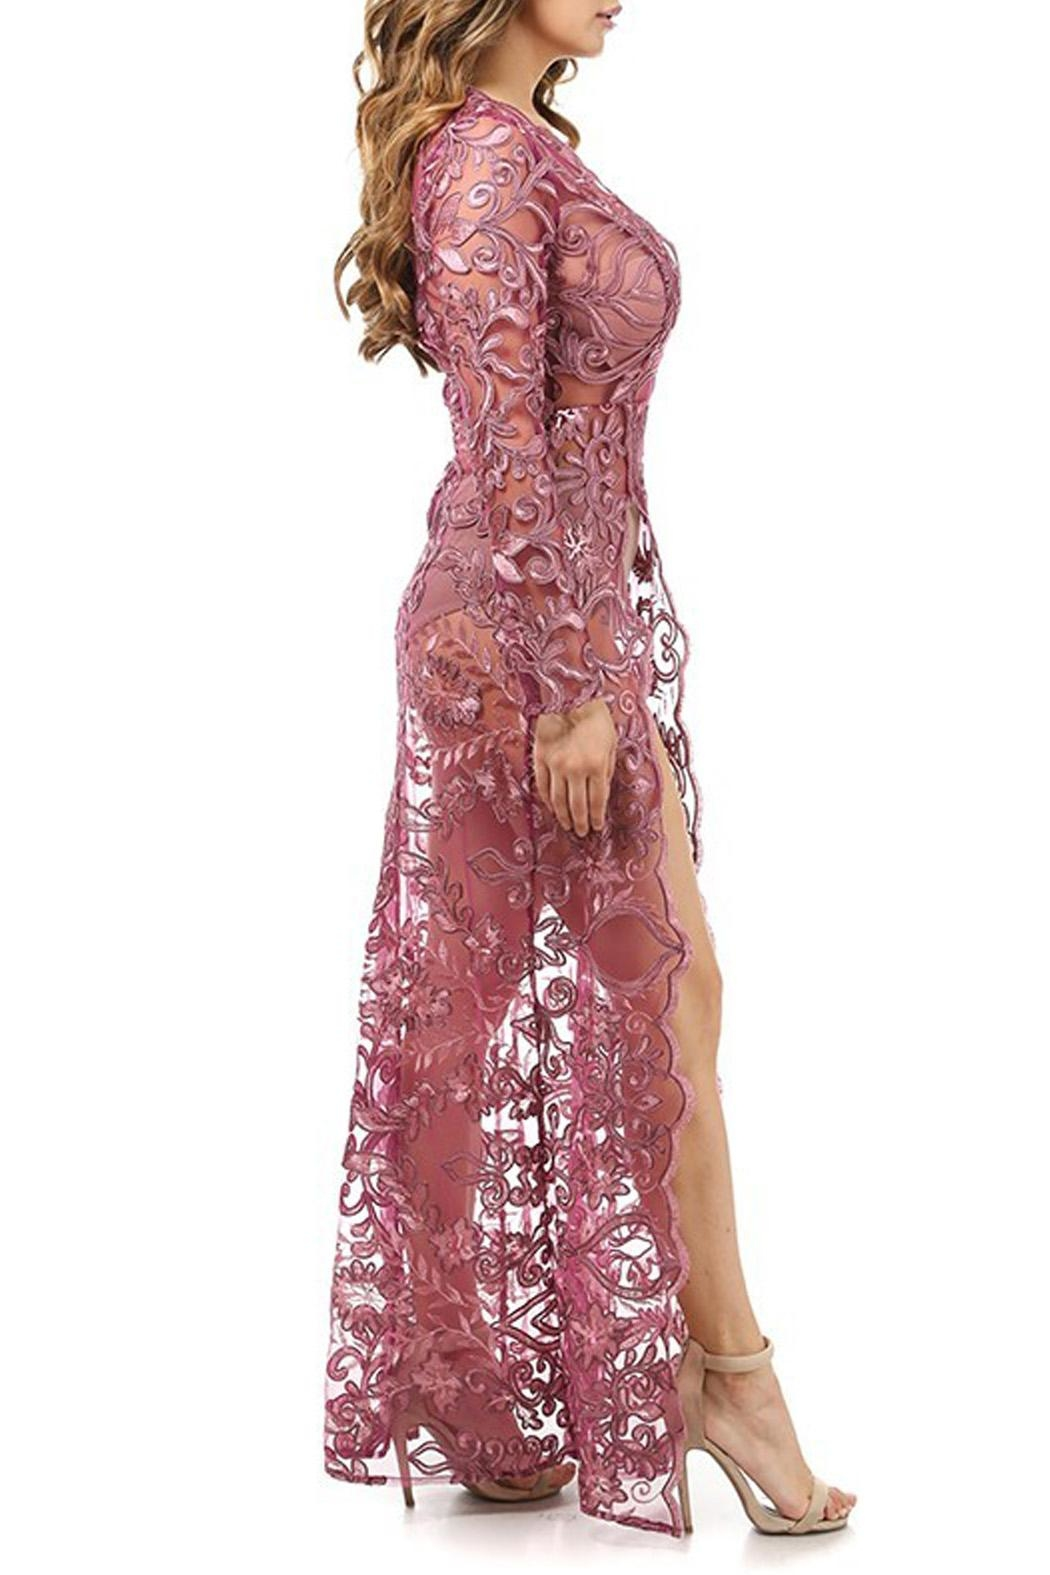 K too Embroidered Sheer Gown - Side Cropped Image